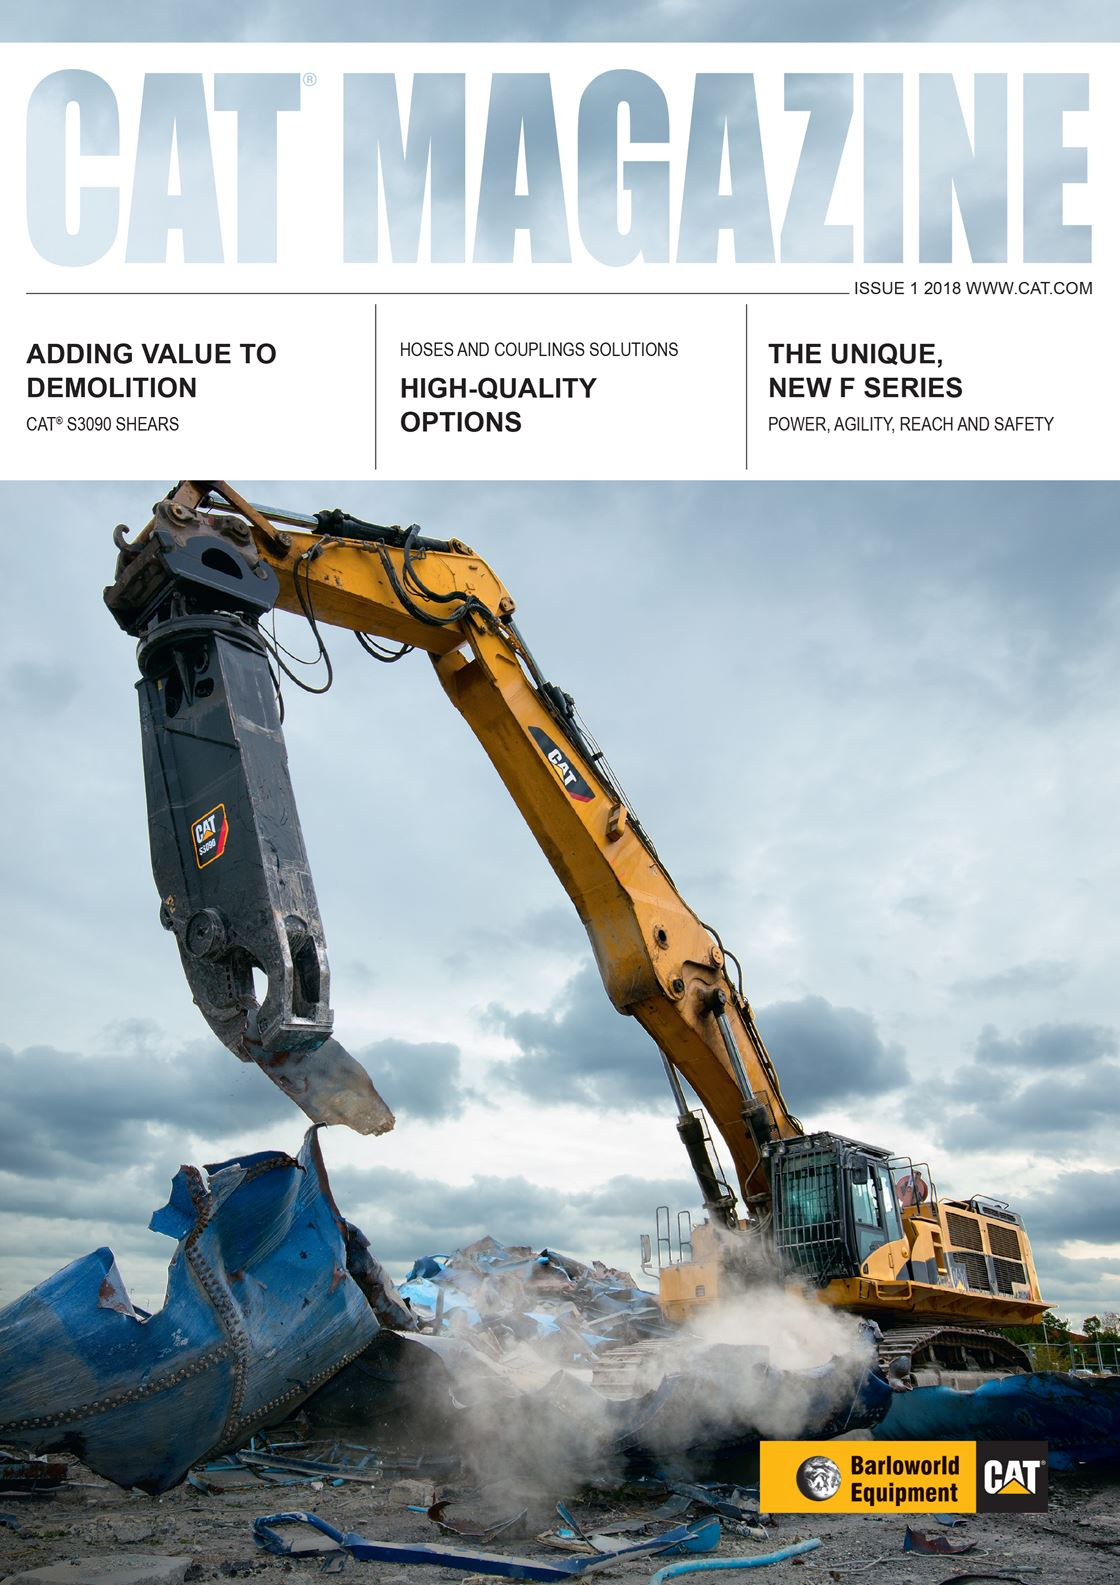 Barloworld Equipment | Cat @ Magazine